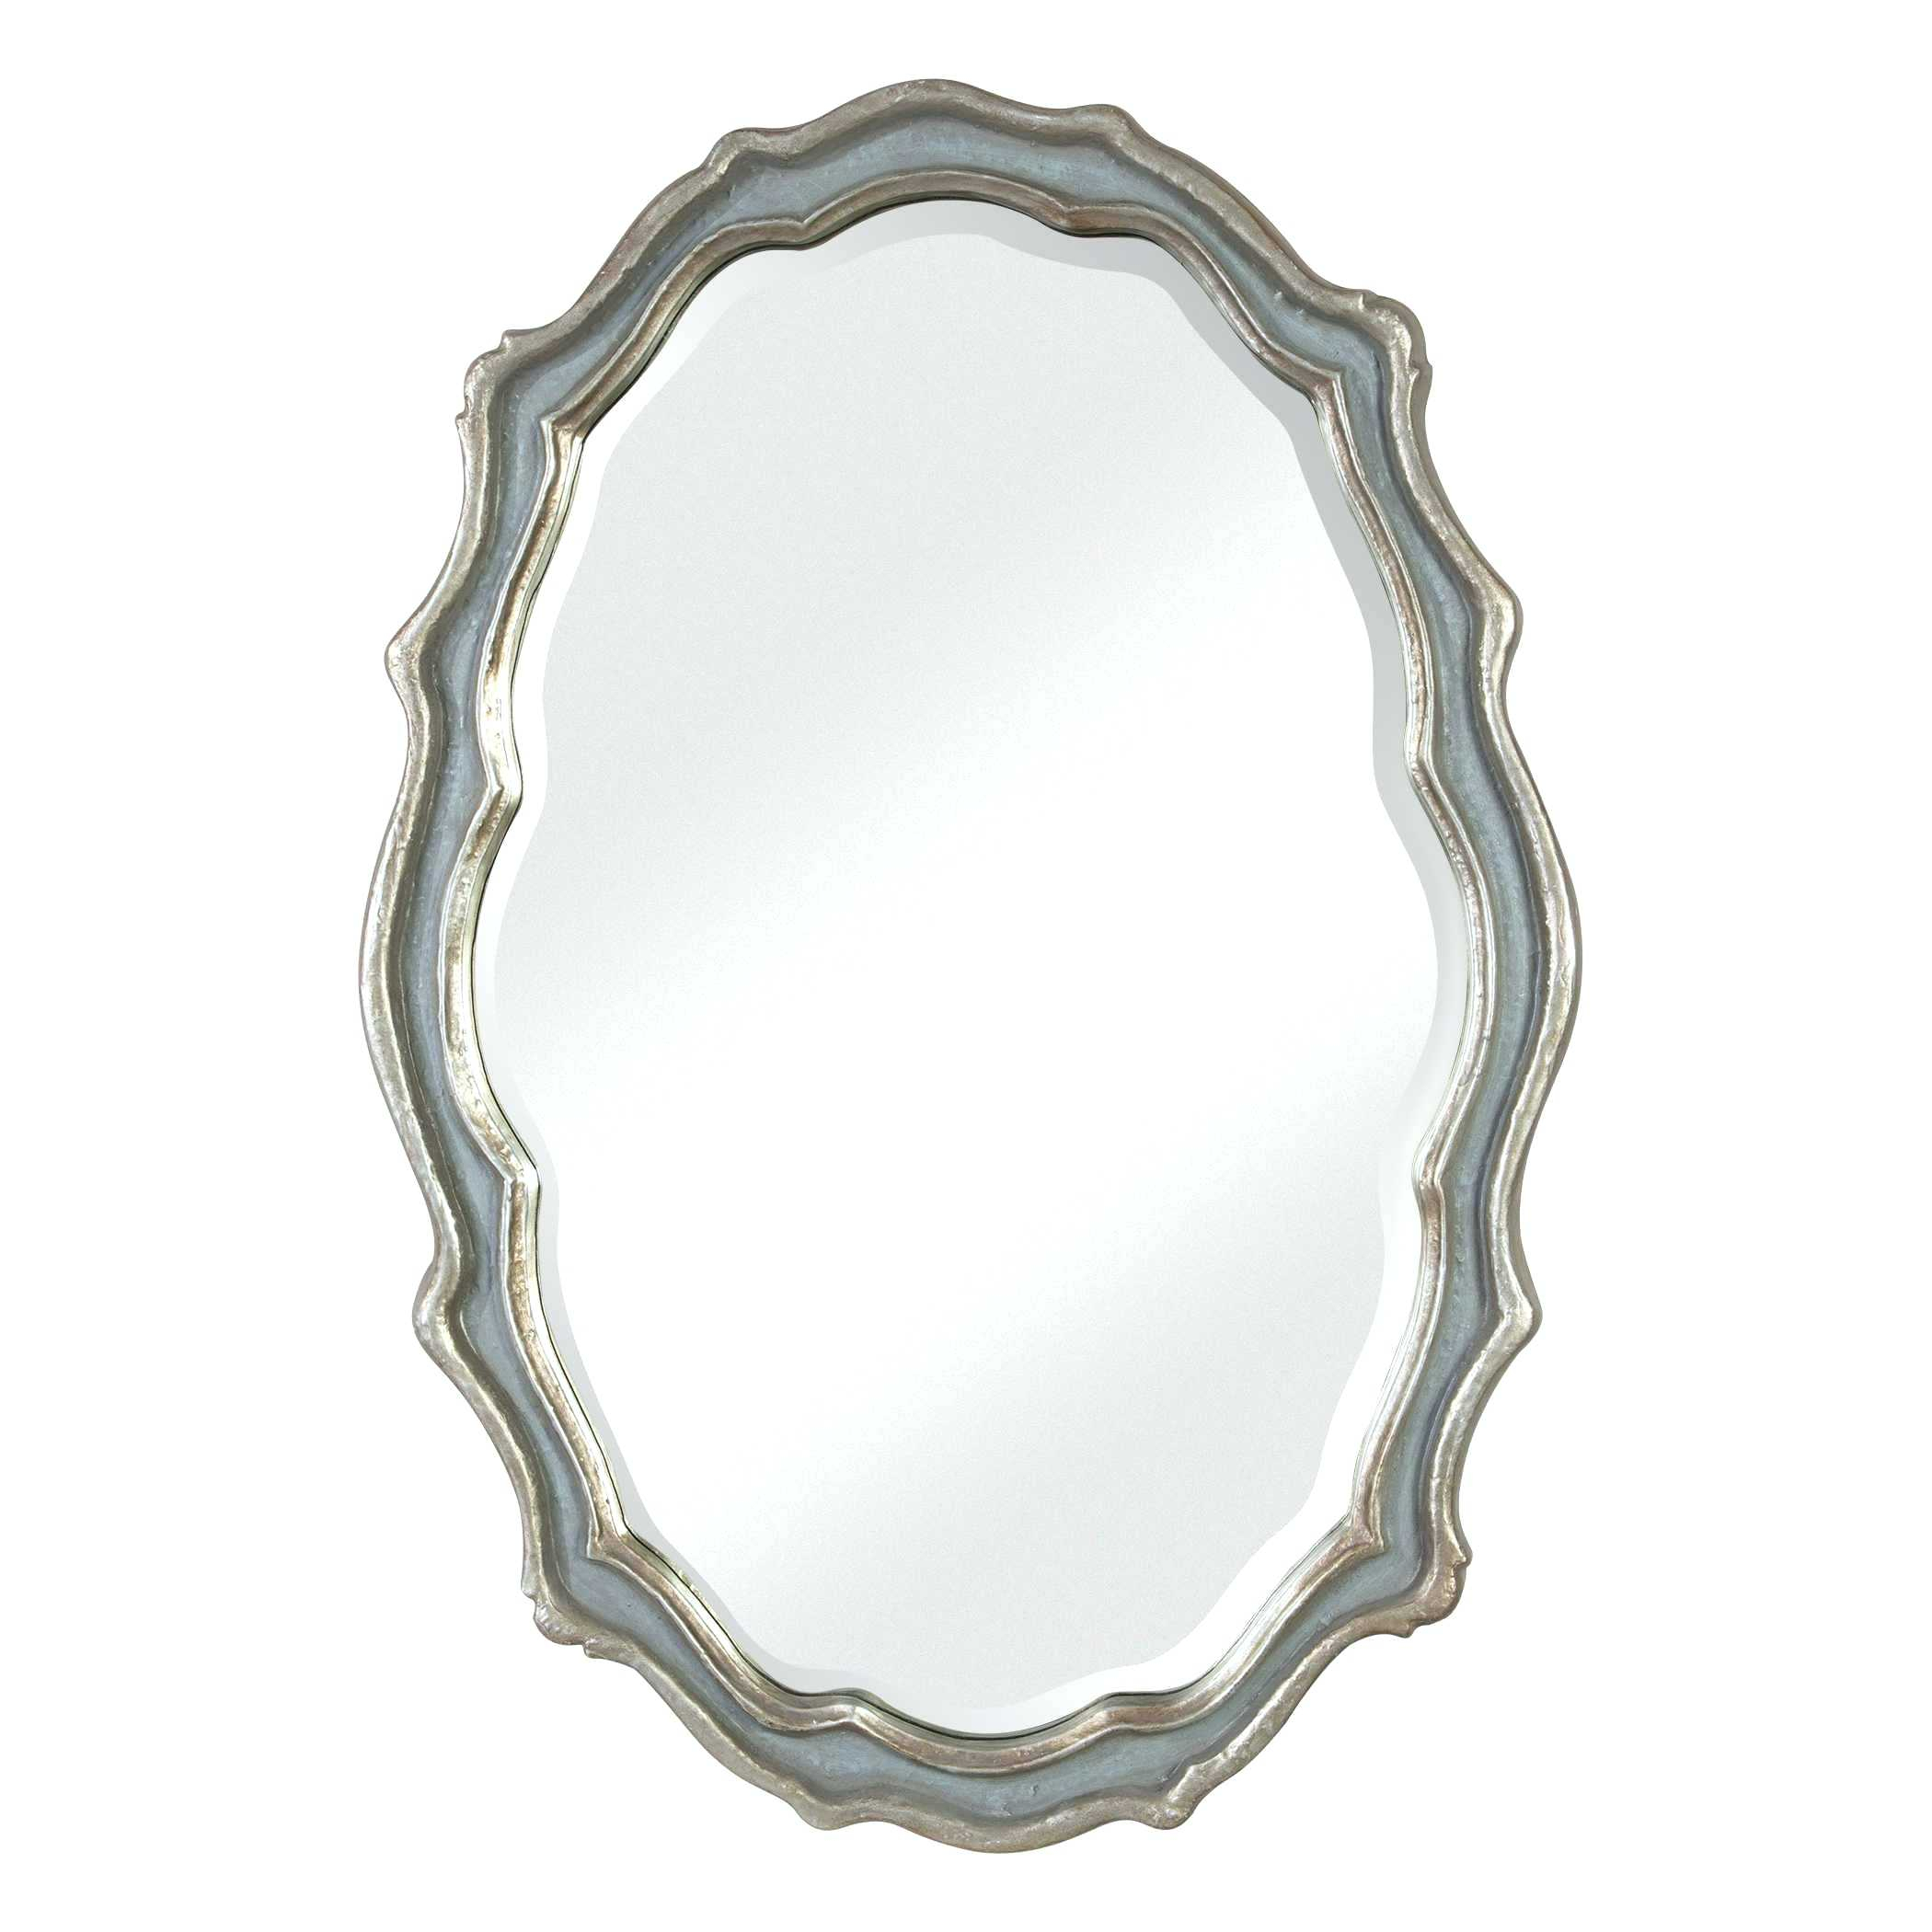 Black Oval Mirror Regarding Glen View Beaded Oval Traditional Accent Mirrors (View 20 of 20)